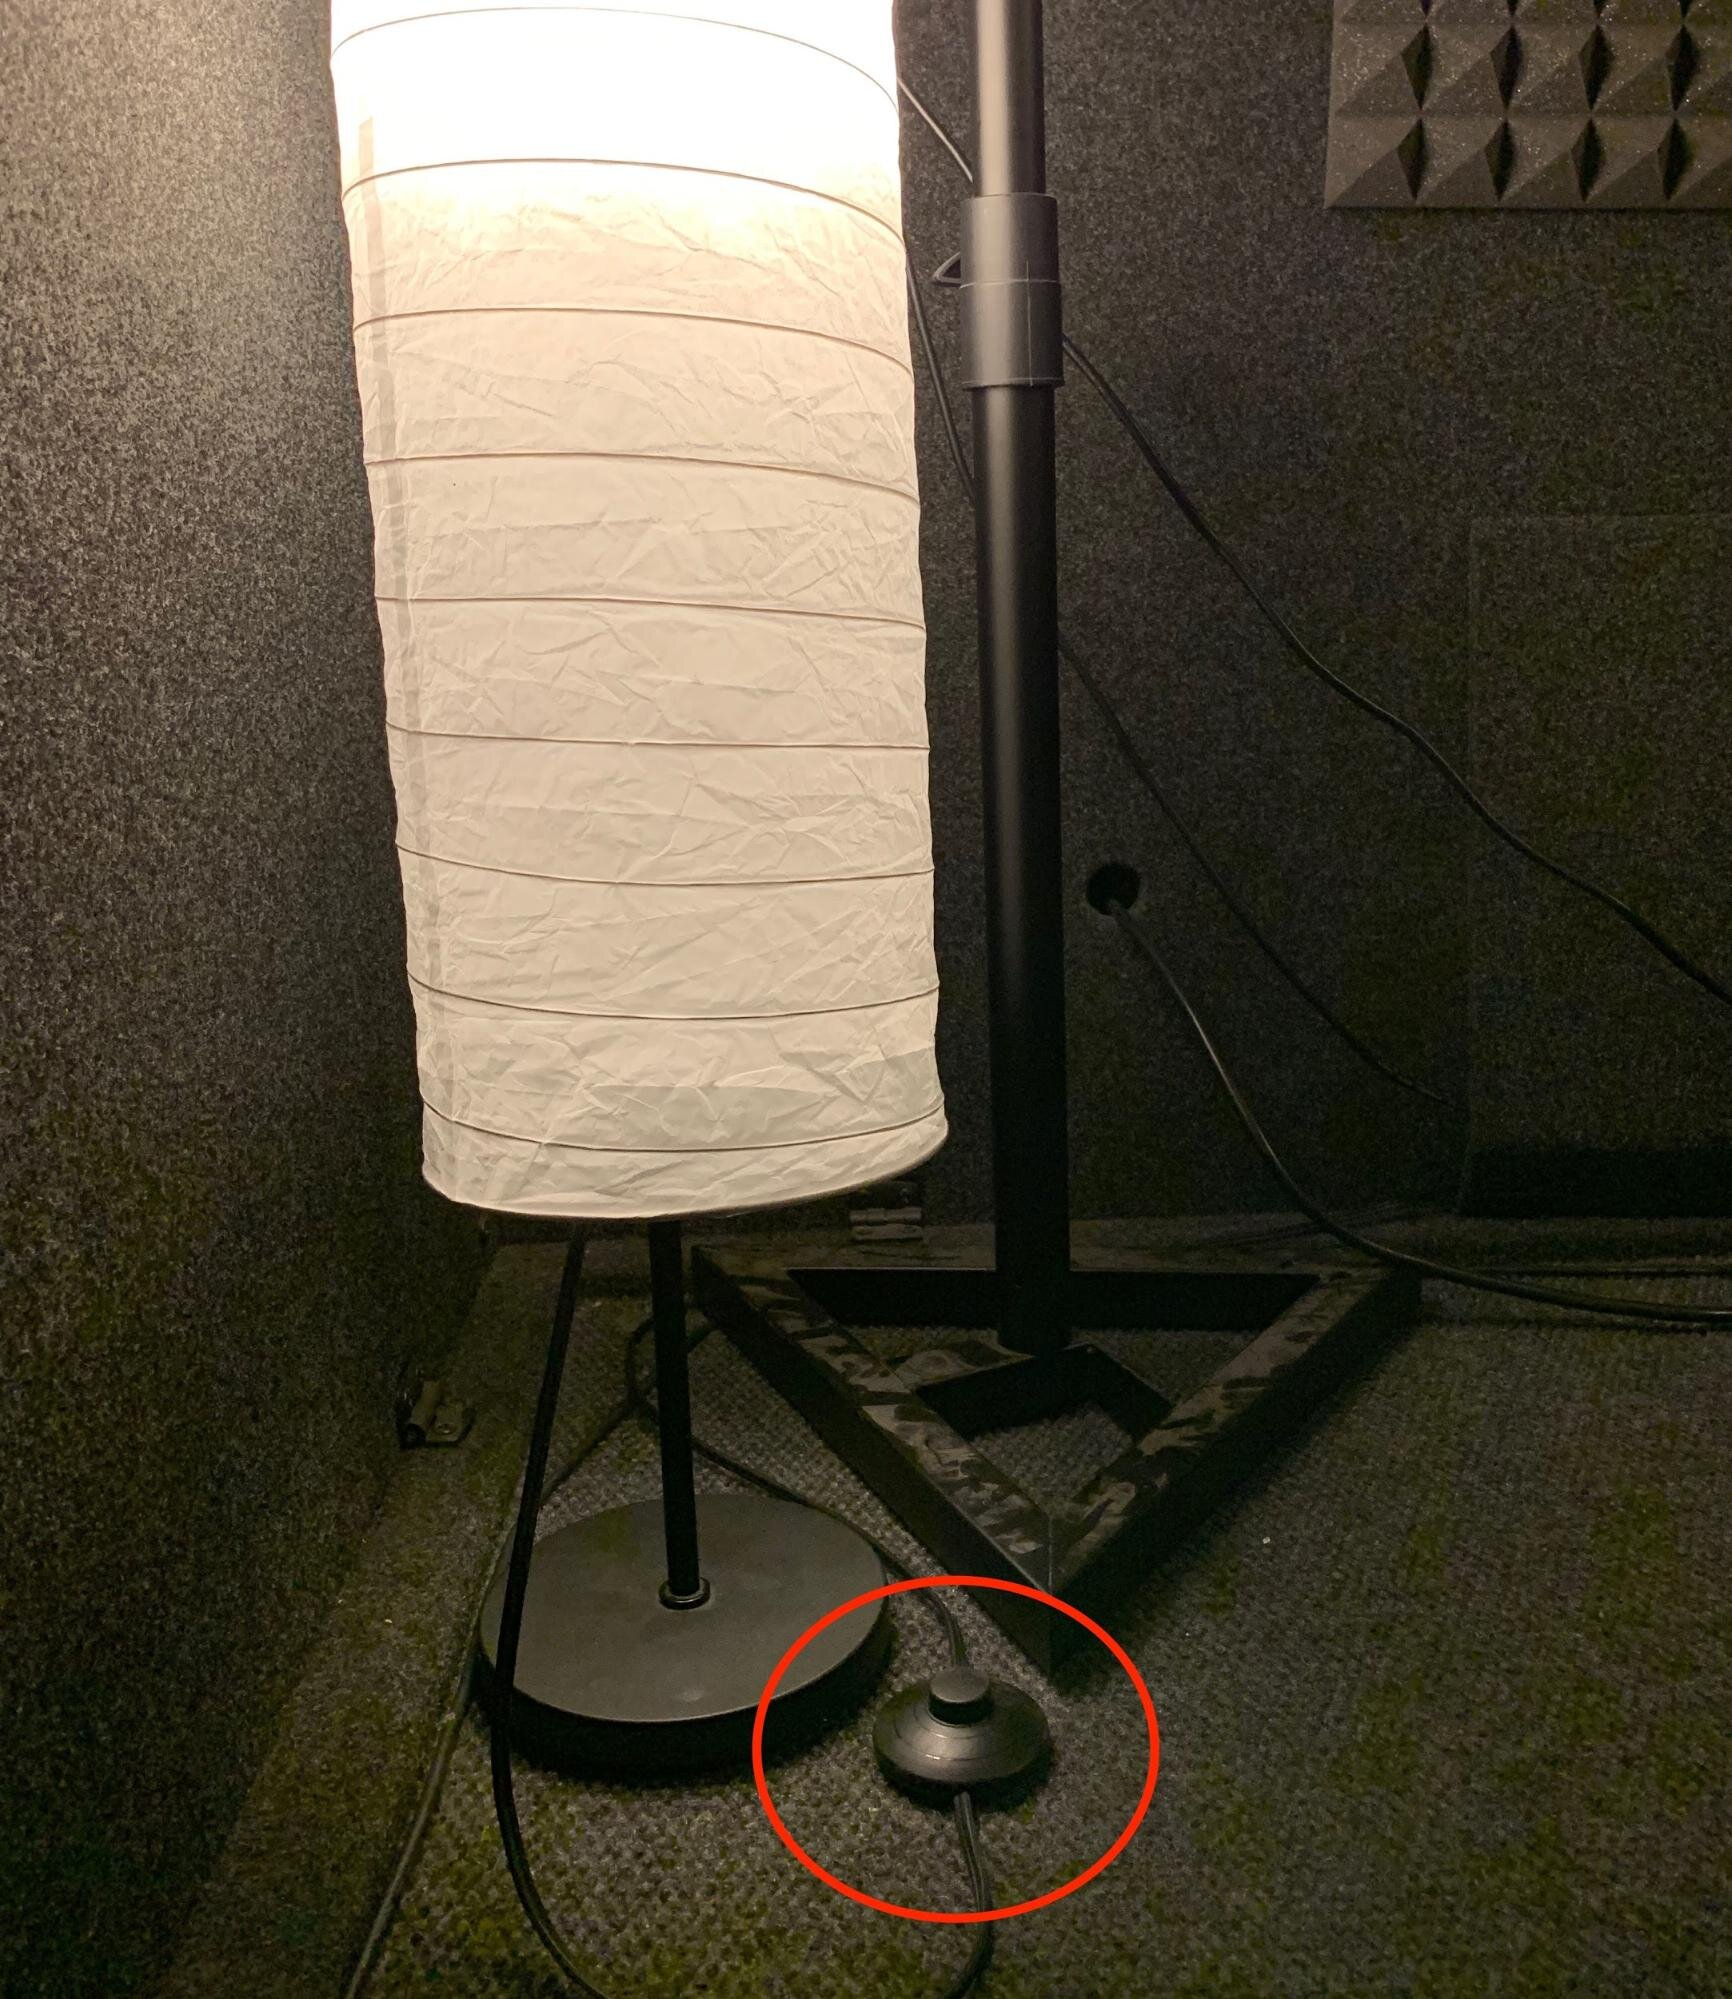 - There are two lamps inside the Whisper Room. The switches for both are button-style, halfway down the cord. Push the switches to turn on/off.If they do not turn on, confirm that they are plugged into Belkin surge protector on floor and surge protector is switched on